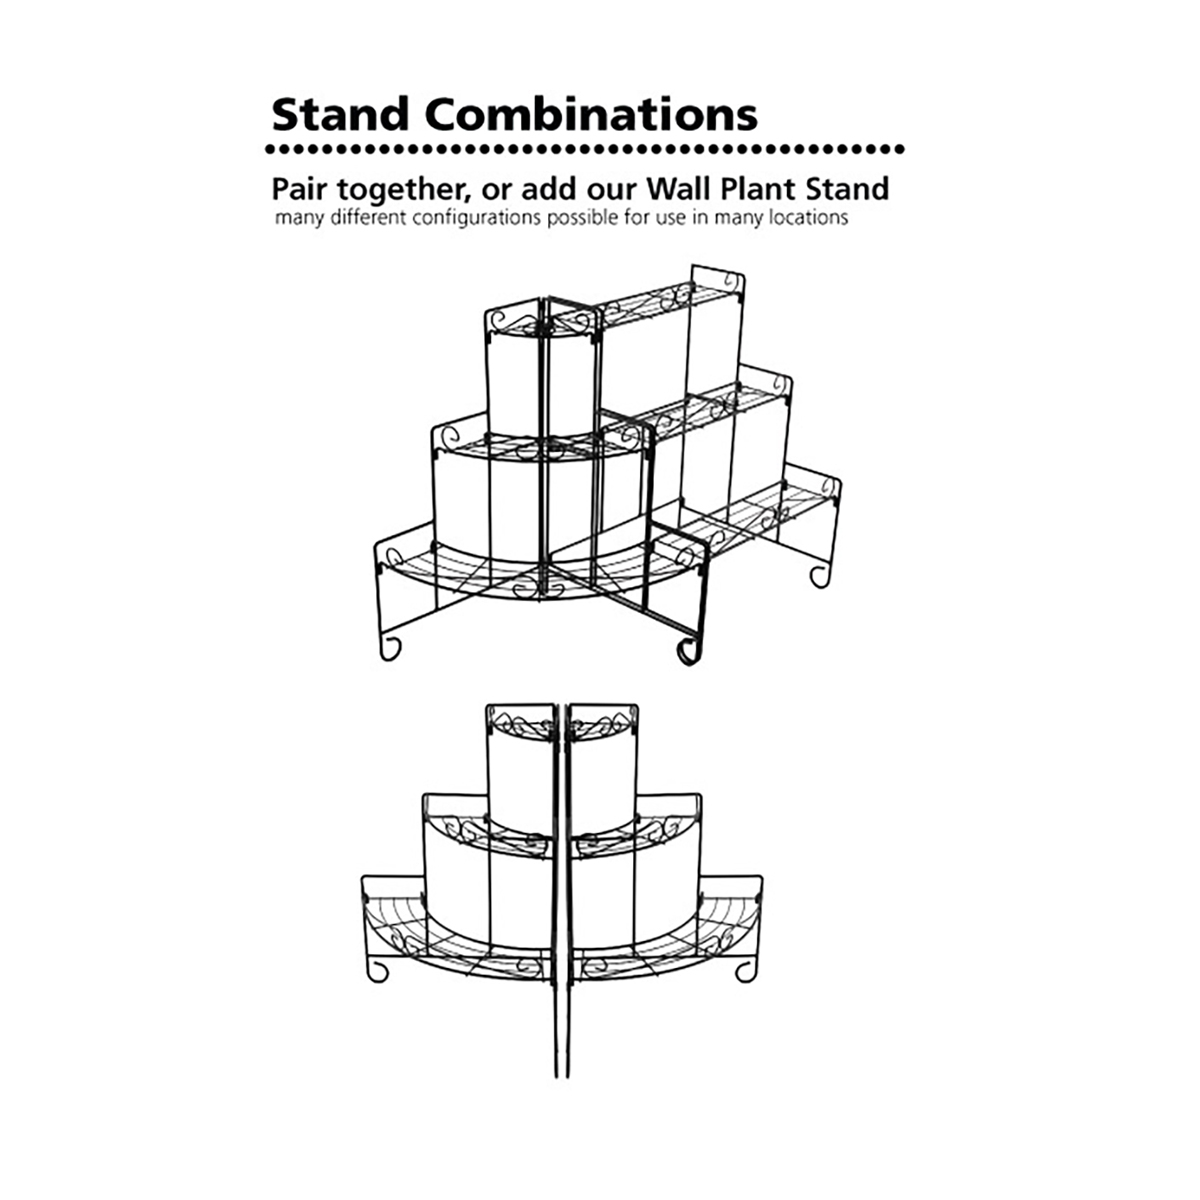 18196 Plant Stand Corner configurations